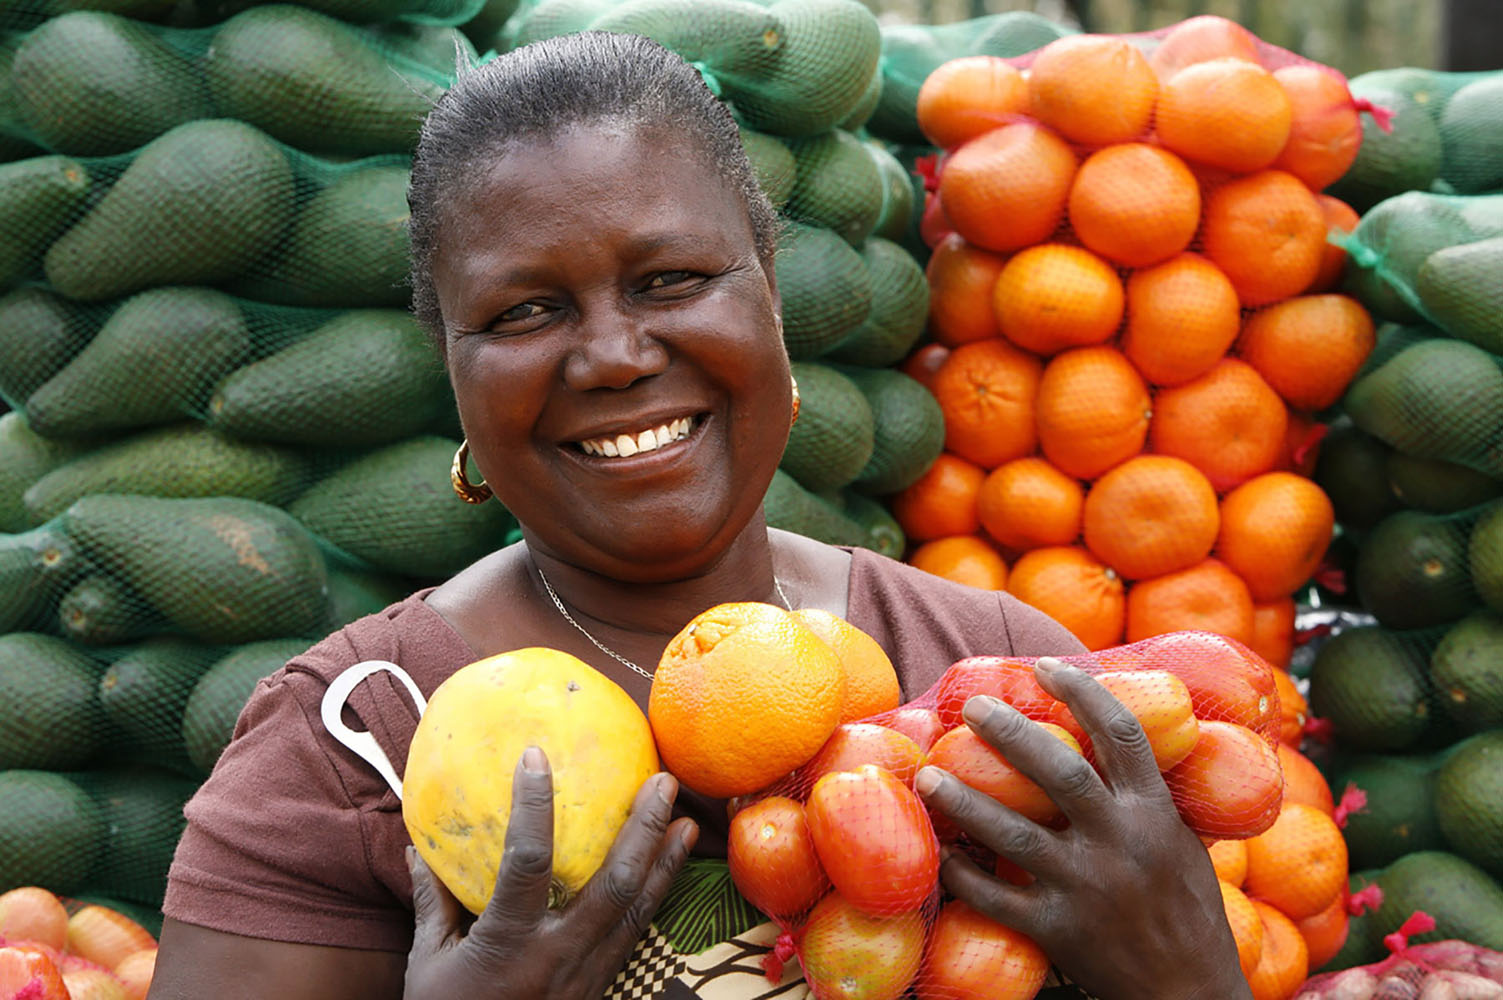 A fruit and vegetable seller poses in front of her produce.